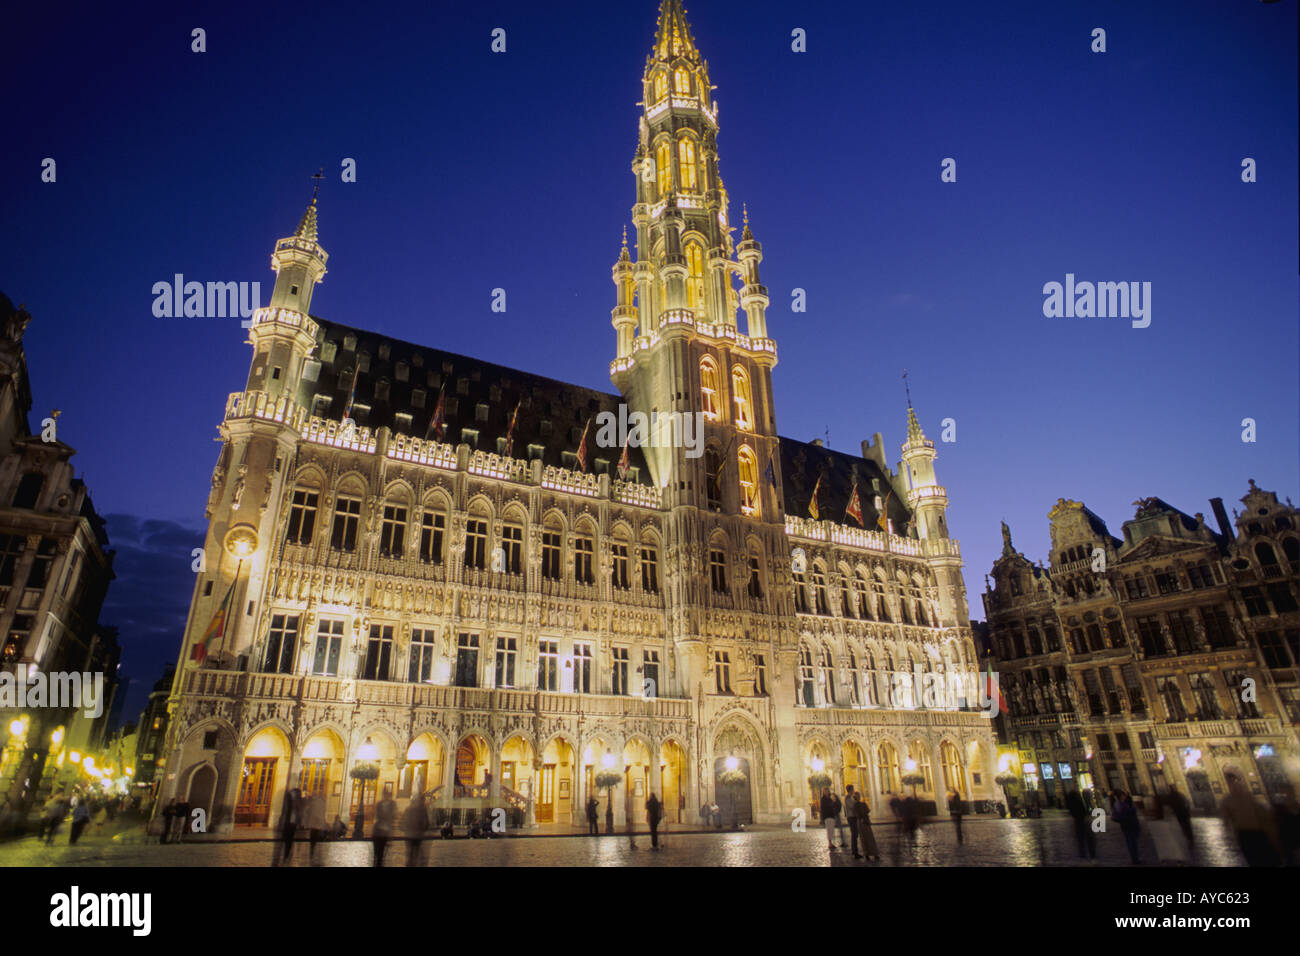 Belgium Bruxelles Brussels City Hall Hotel de Ville Grand Place night Stock Photo